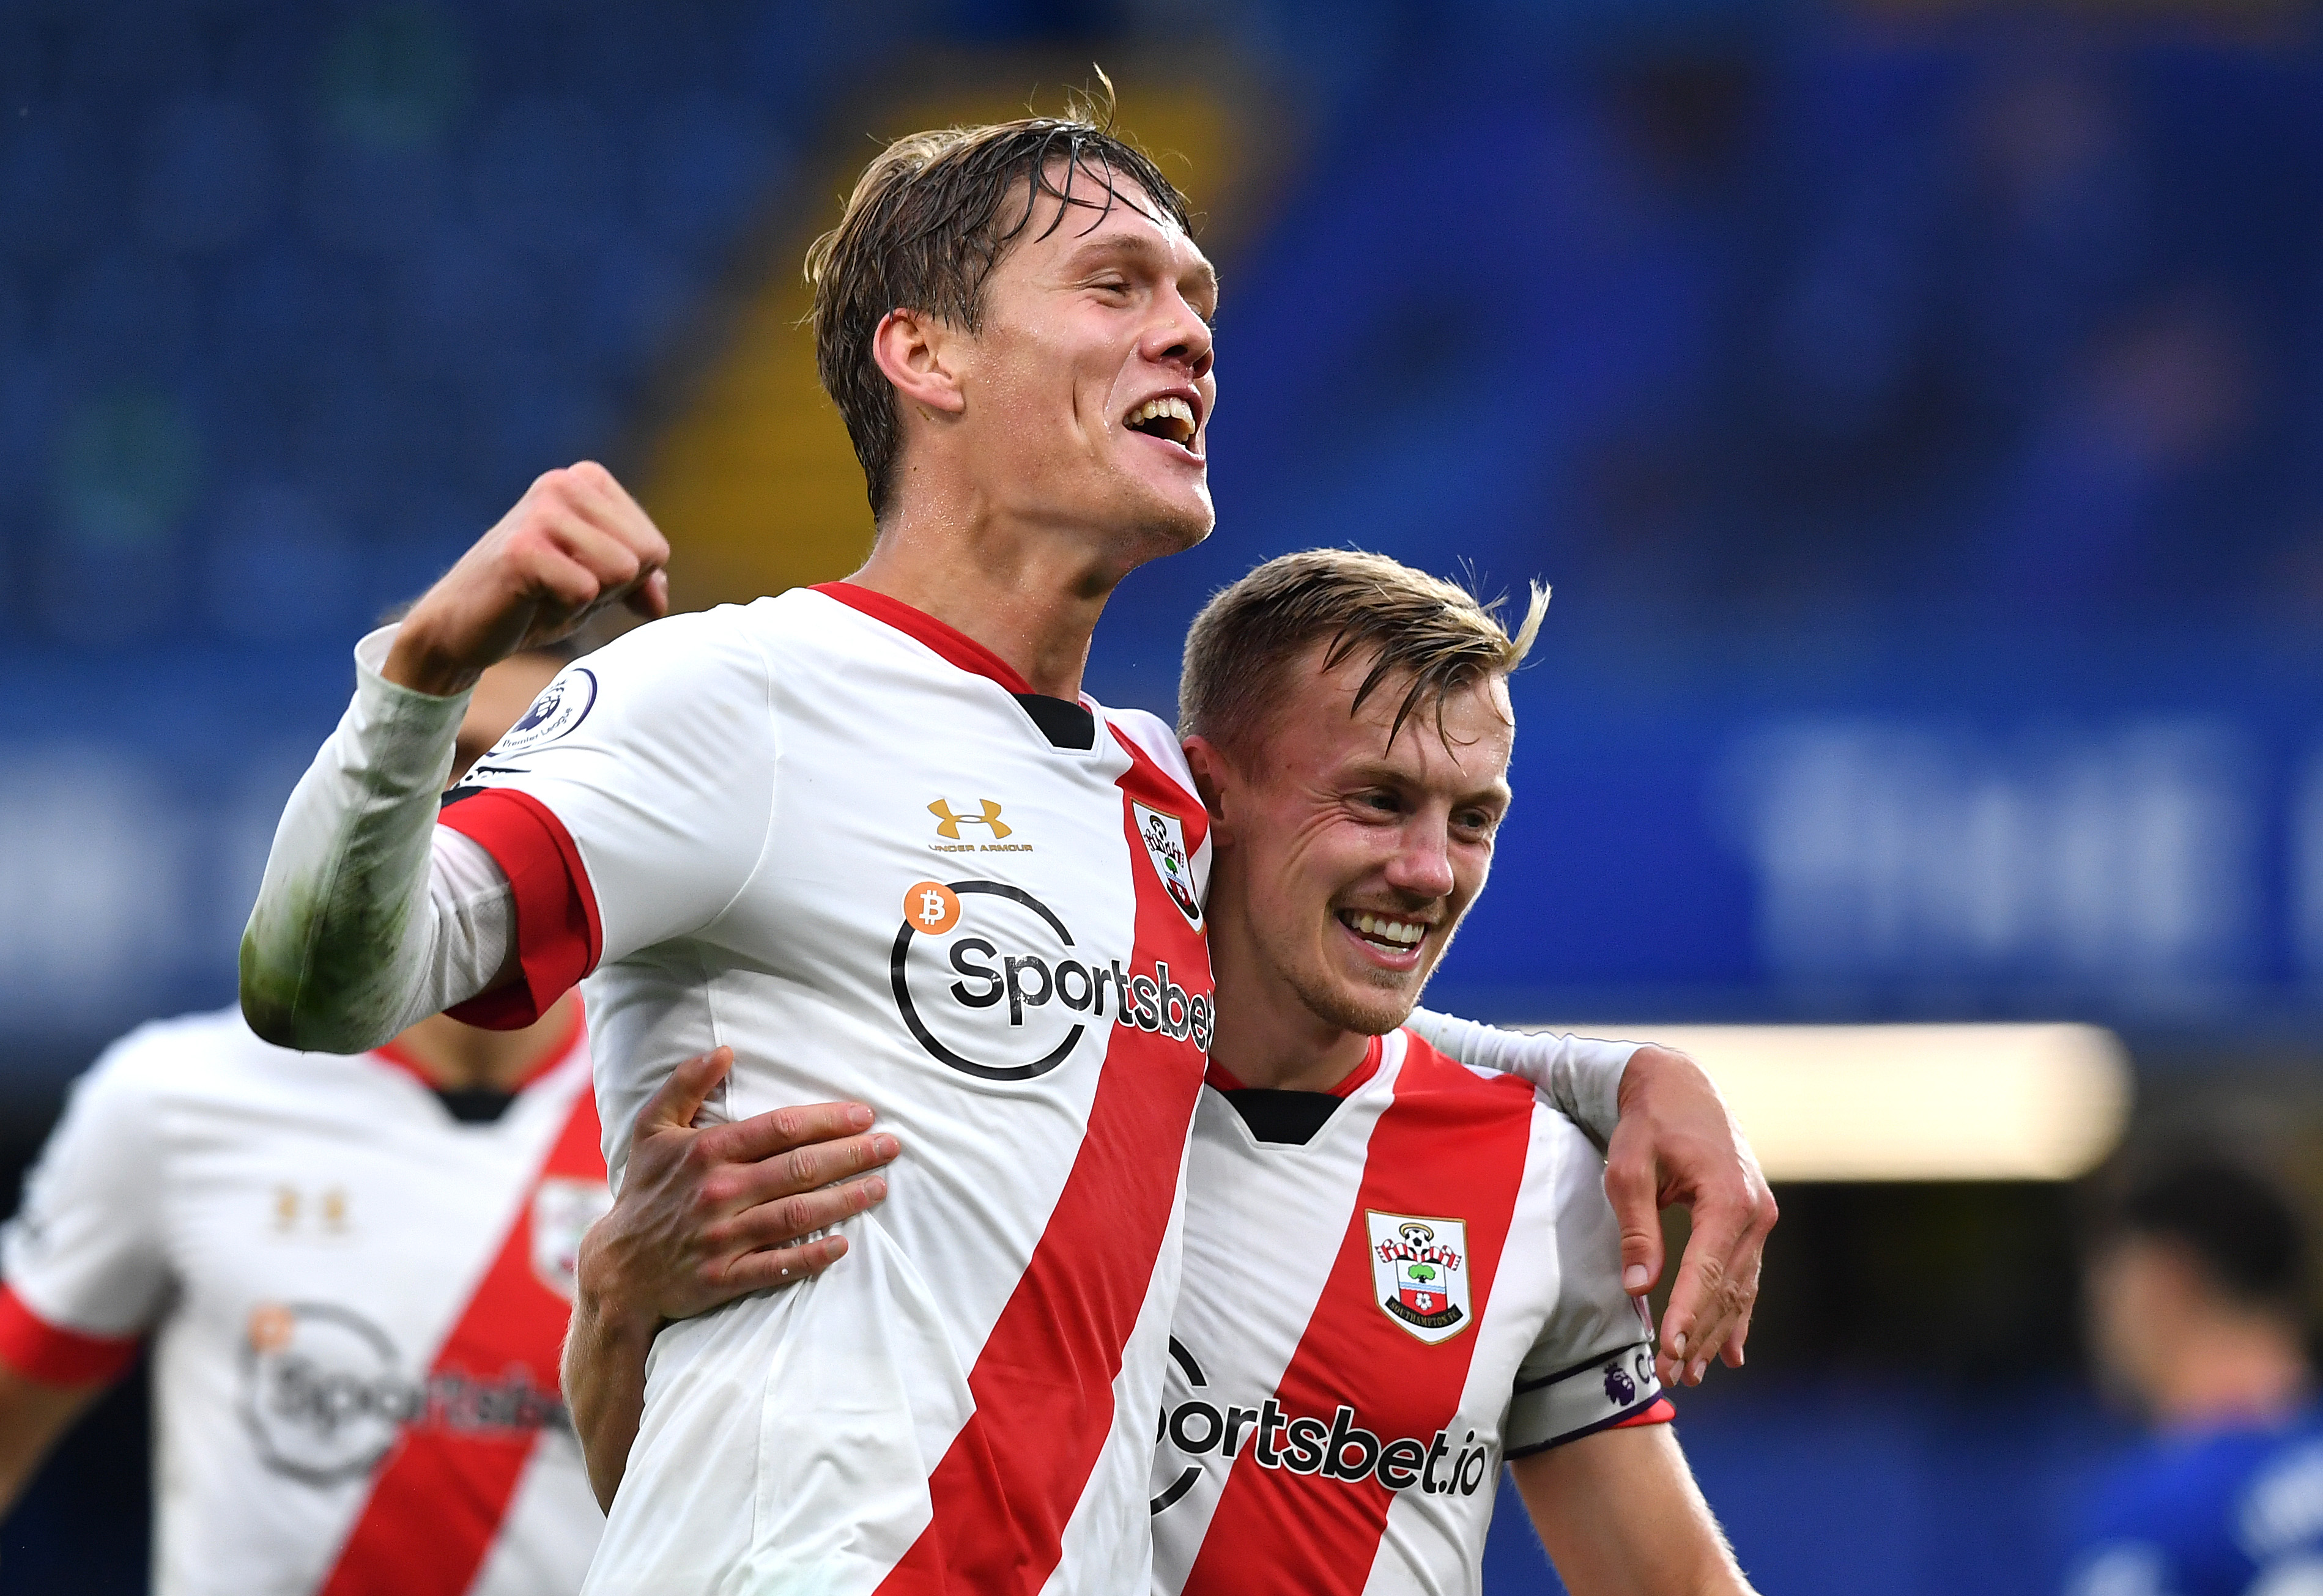 Chelsea v Southampton - Premier League Jannik Vestergaard goal, Saints preview, team news, injury update, stats, how to watch on tv, where to stream online